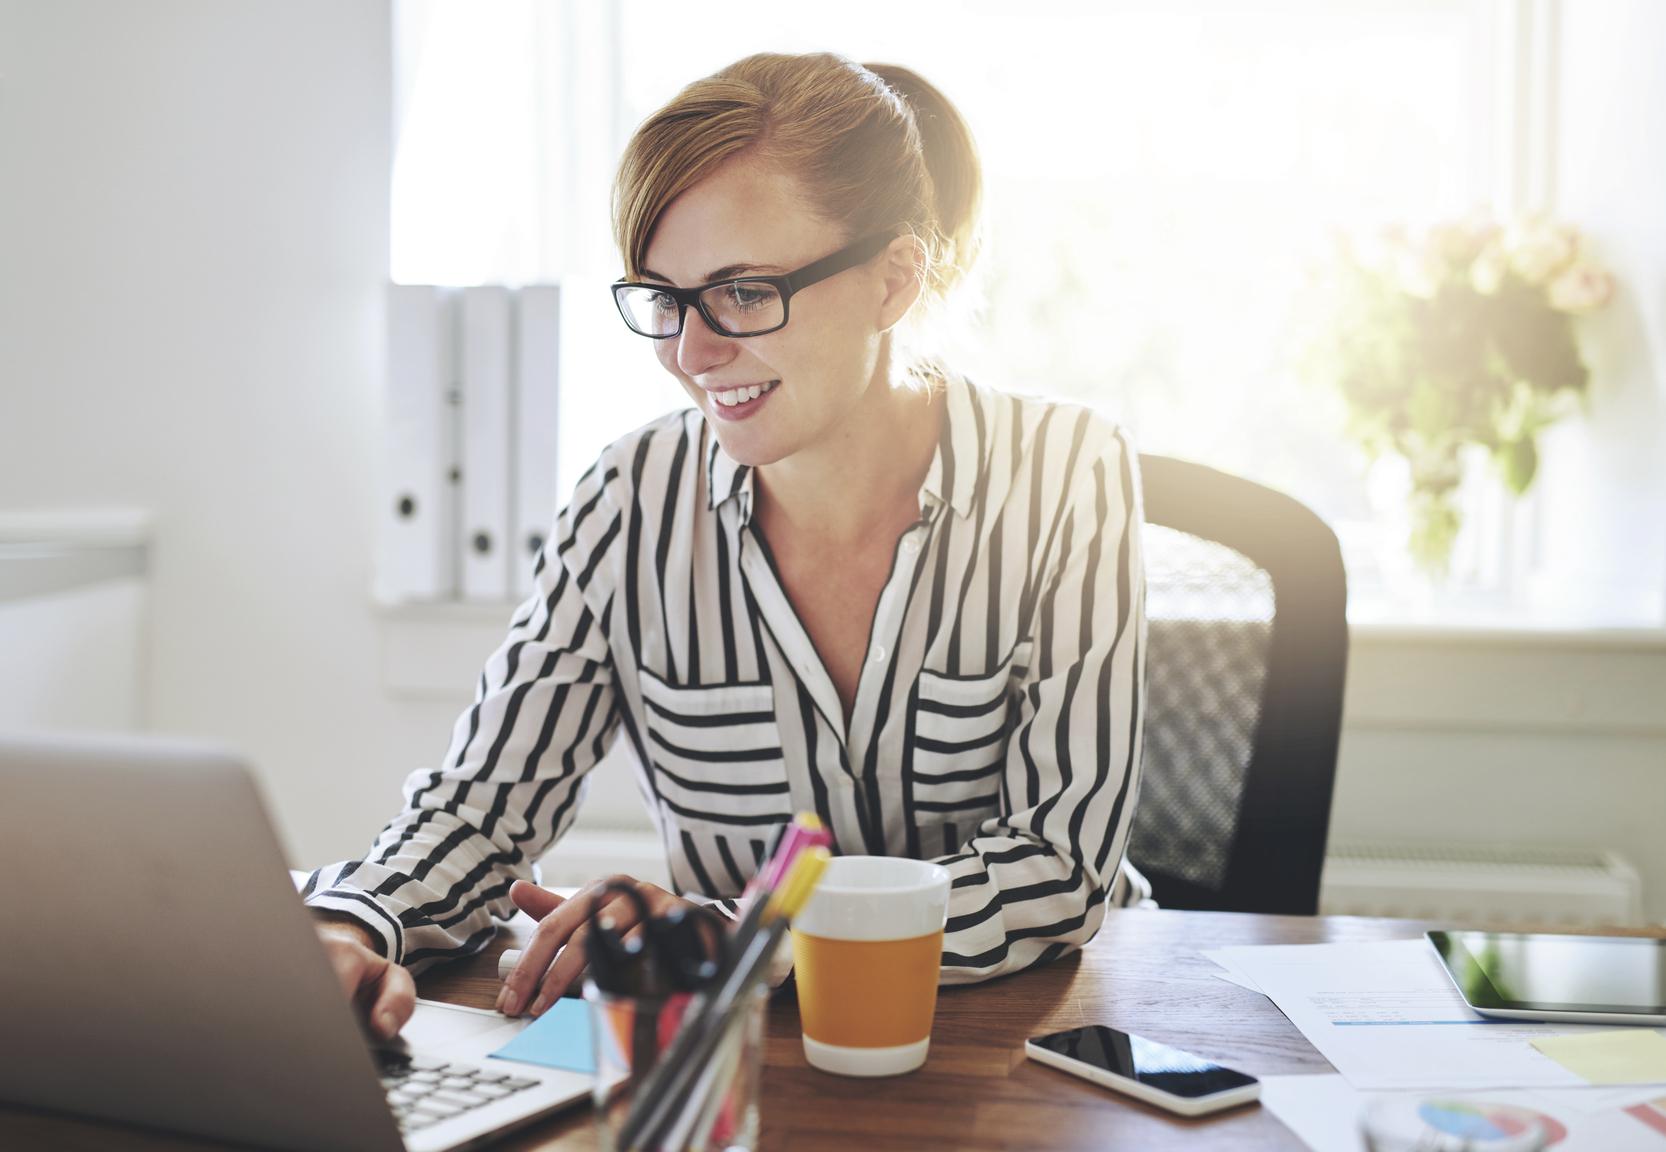 Why Everyone Should Be Embracing The Millennial Work Style